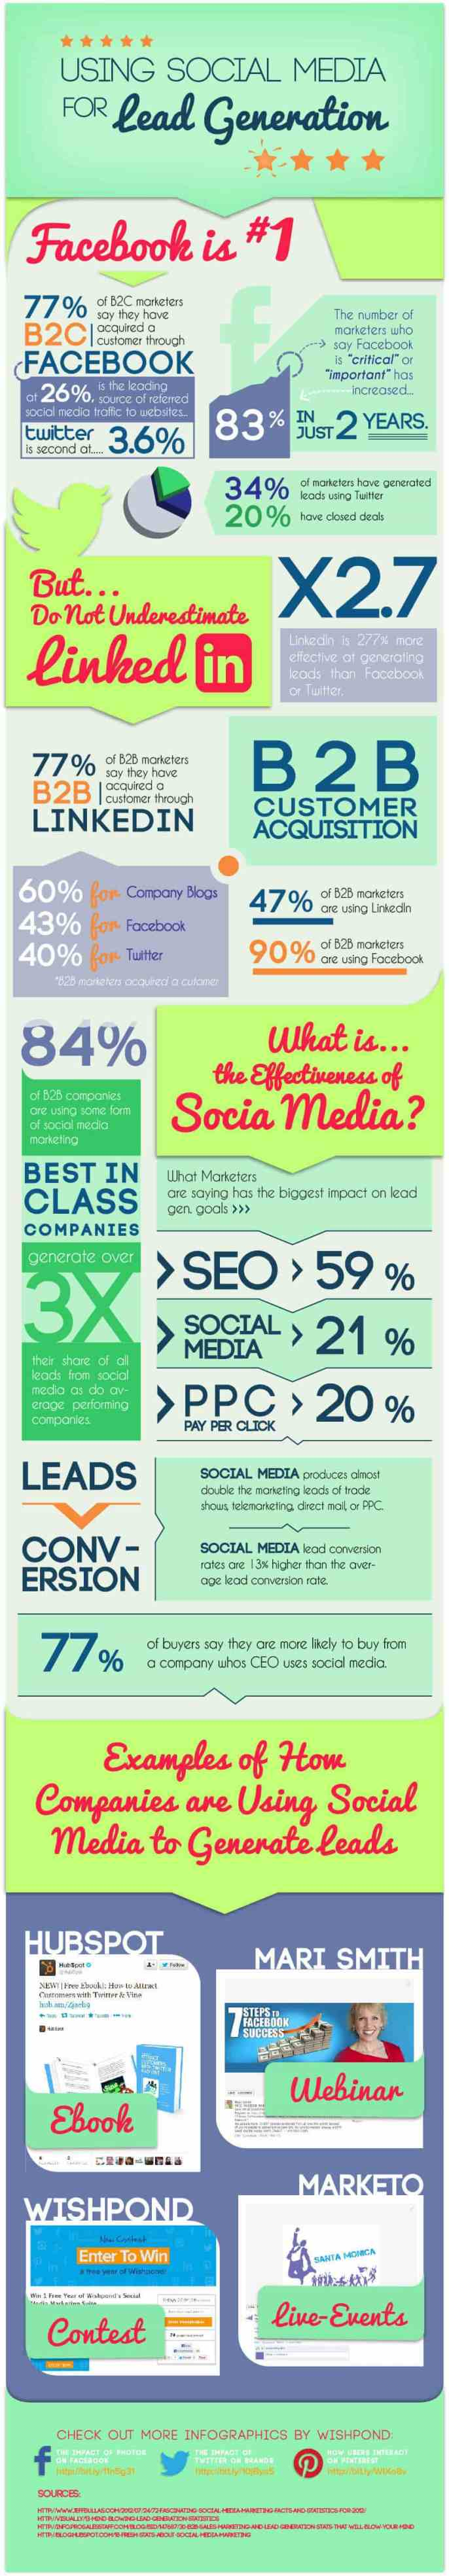 infographic_leadgeneration[1]